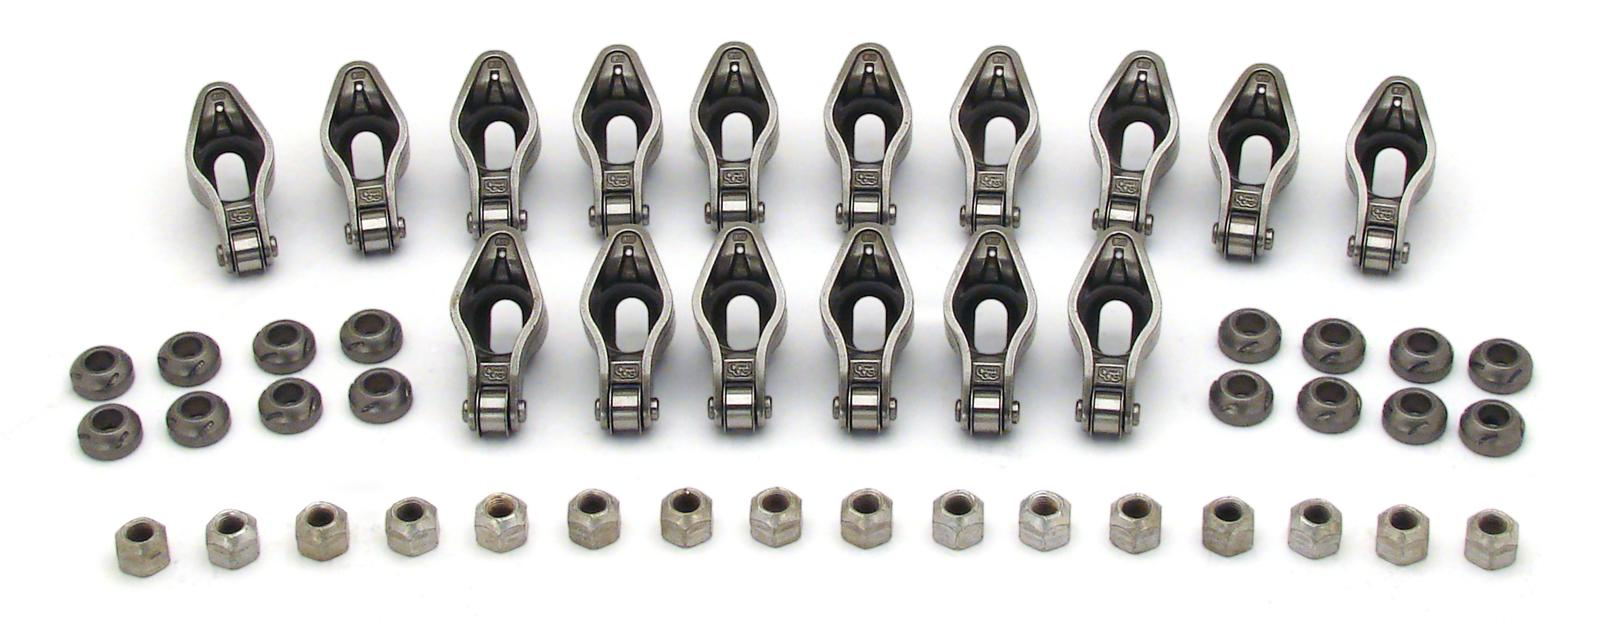 COMP Cams Magnum Steel Roller Tip Rocker Arms 1417-16 - Free Shipping on  Orders Over $99 at Summit Racing